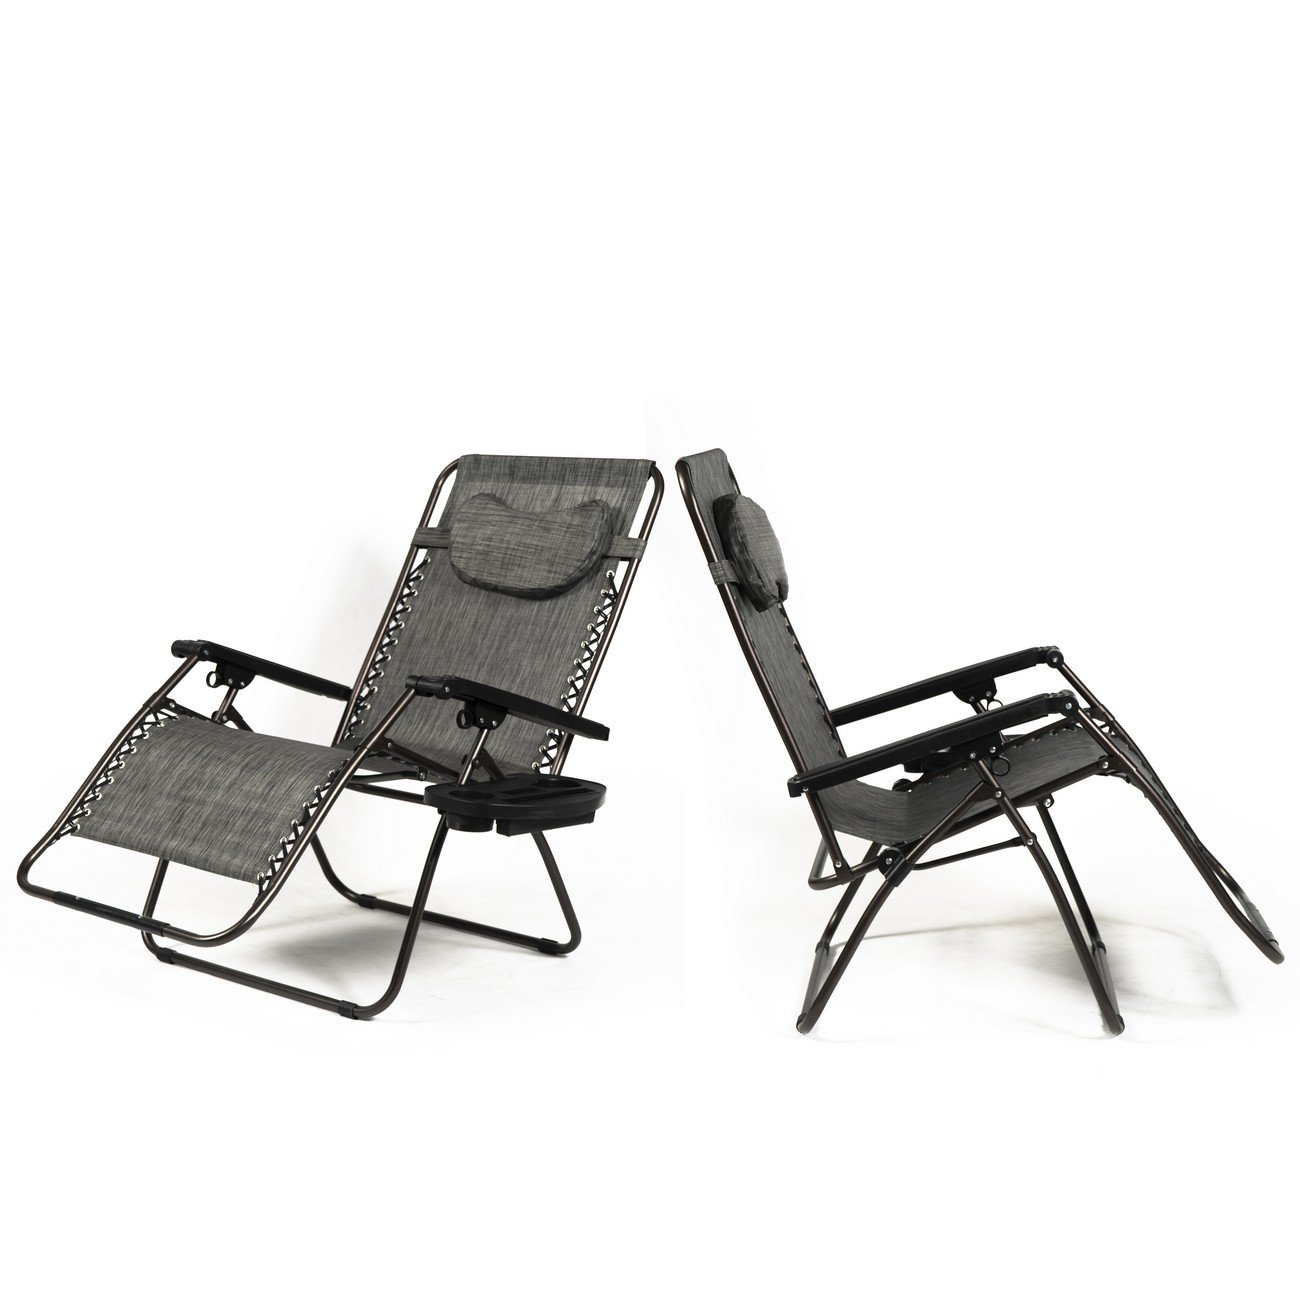 Amazon.com : Belleze XL Oversized Zero Gravity Chairs Sets Of (2) Foldable  Recliner Lounge Padded With Pillow Tray Holder, Gray : Garden U0026 Outdoor